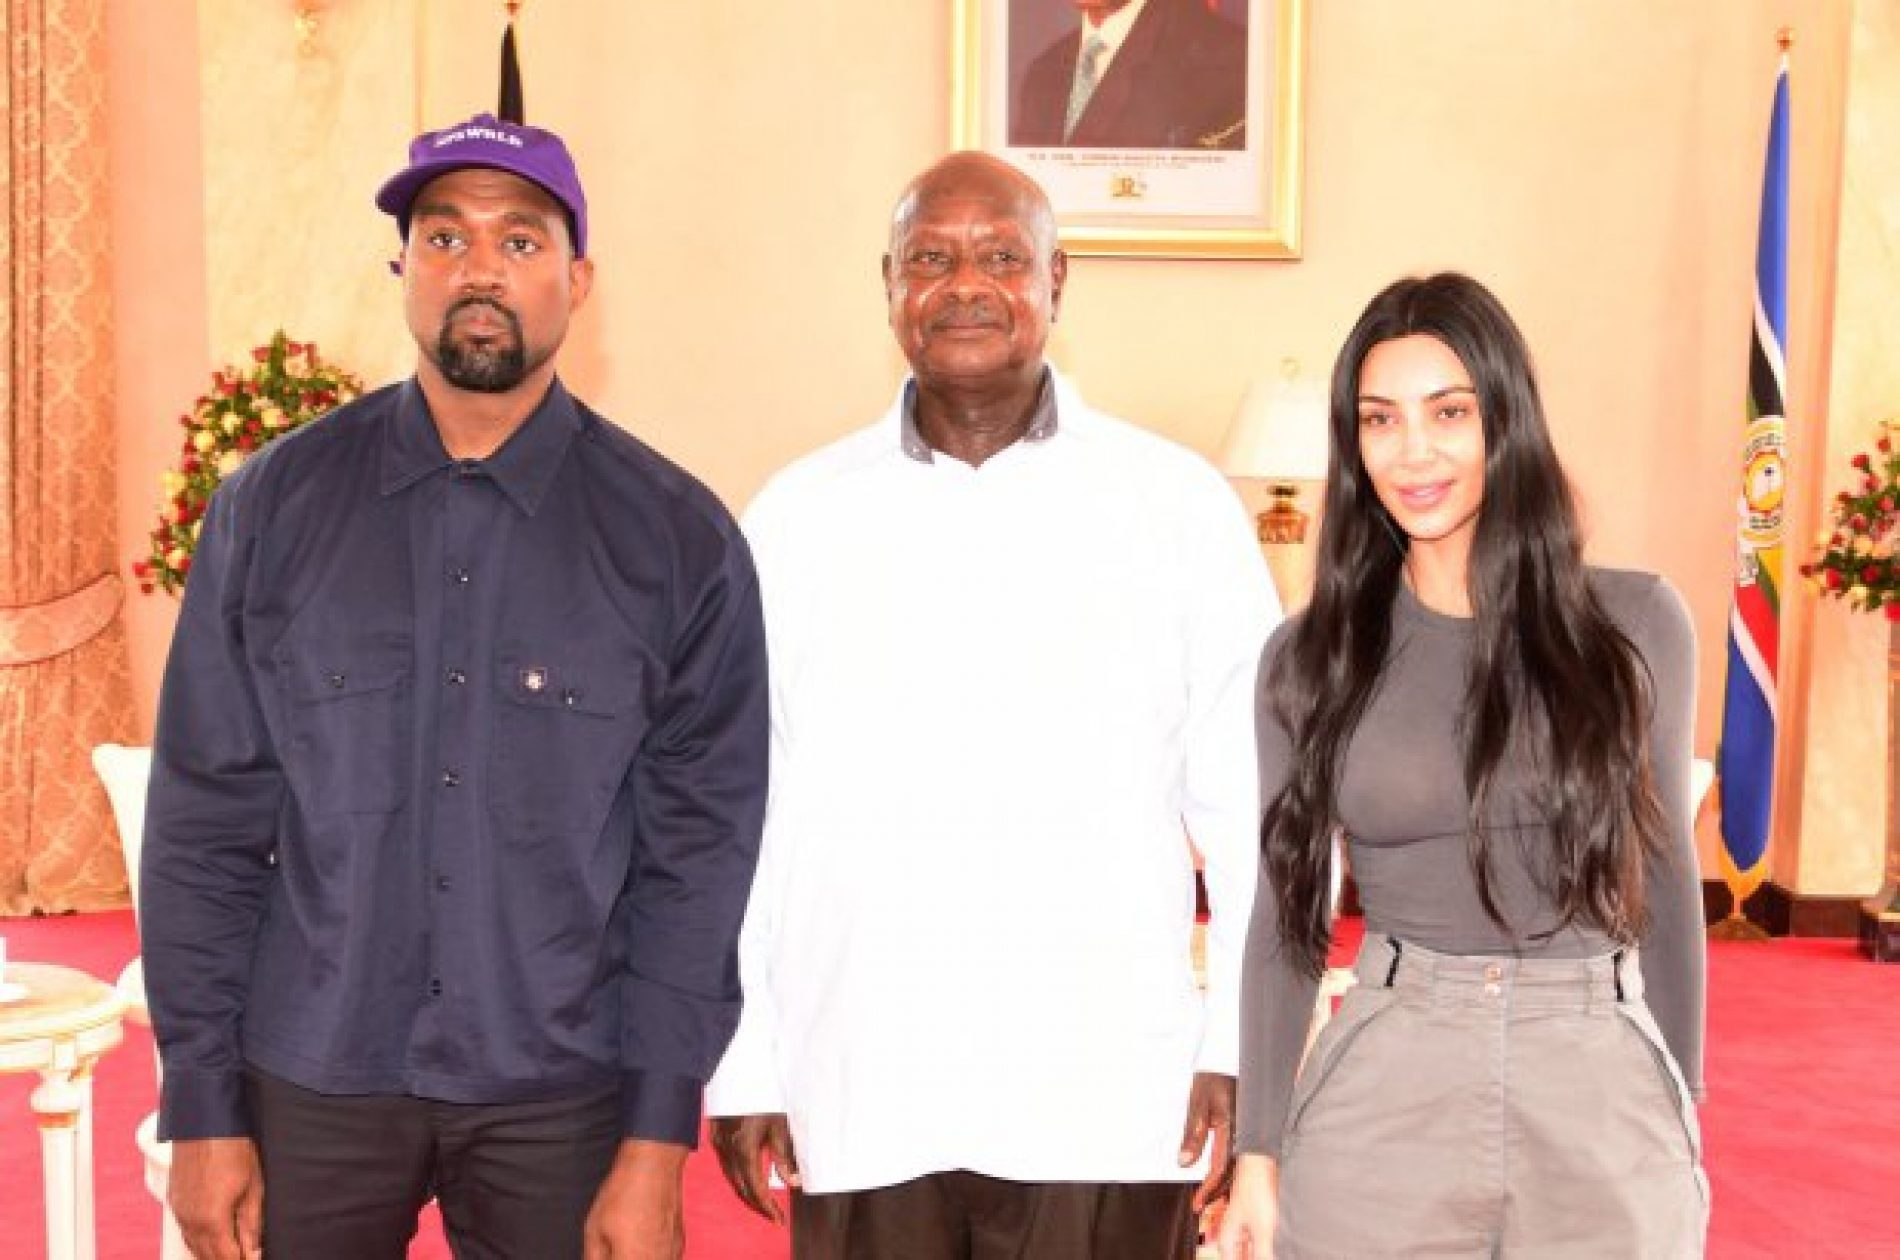 Kanye West and Kim Kardashian are being criticized for meeting with Uganda's Anti-Gay President